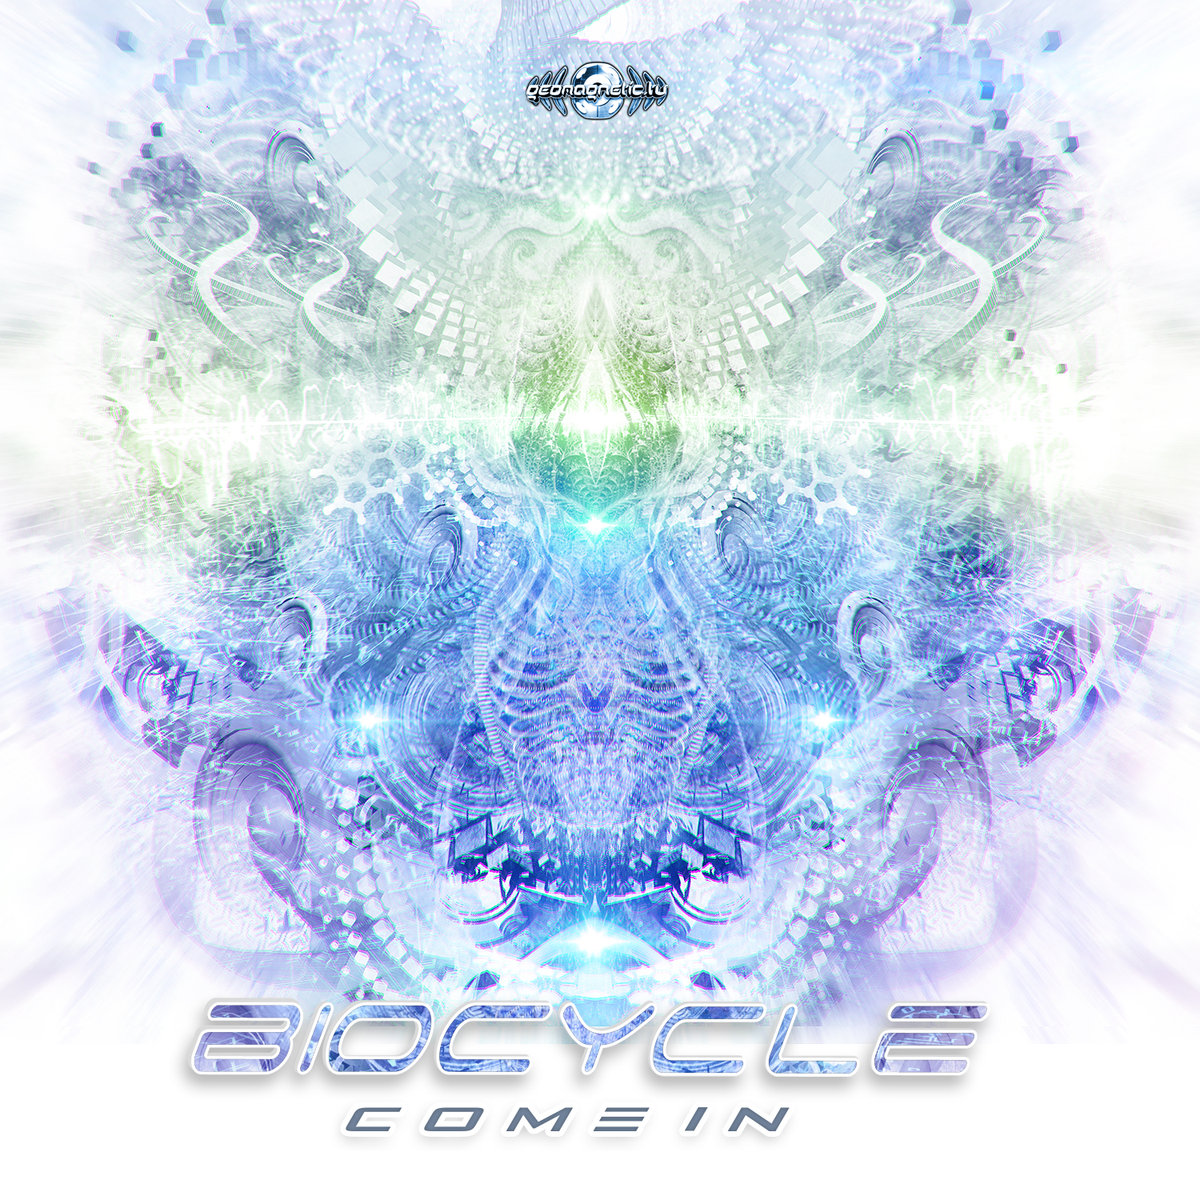 Biocycle - VibeRations @ 'Come In' album (electronic, geomagnetic)